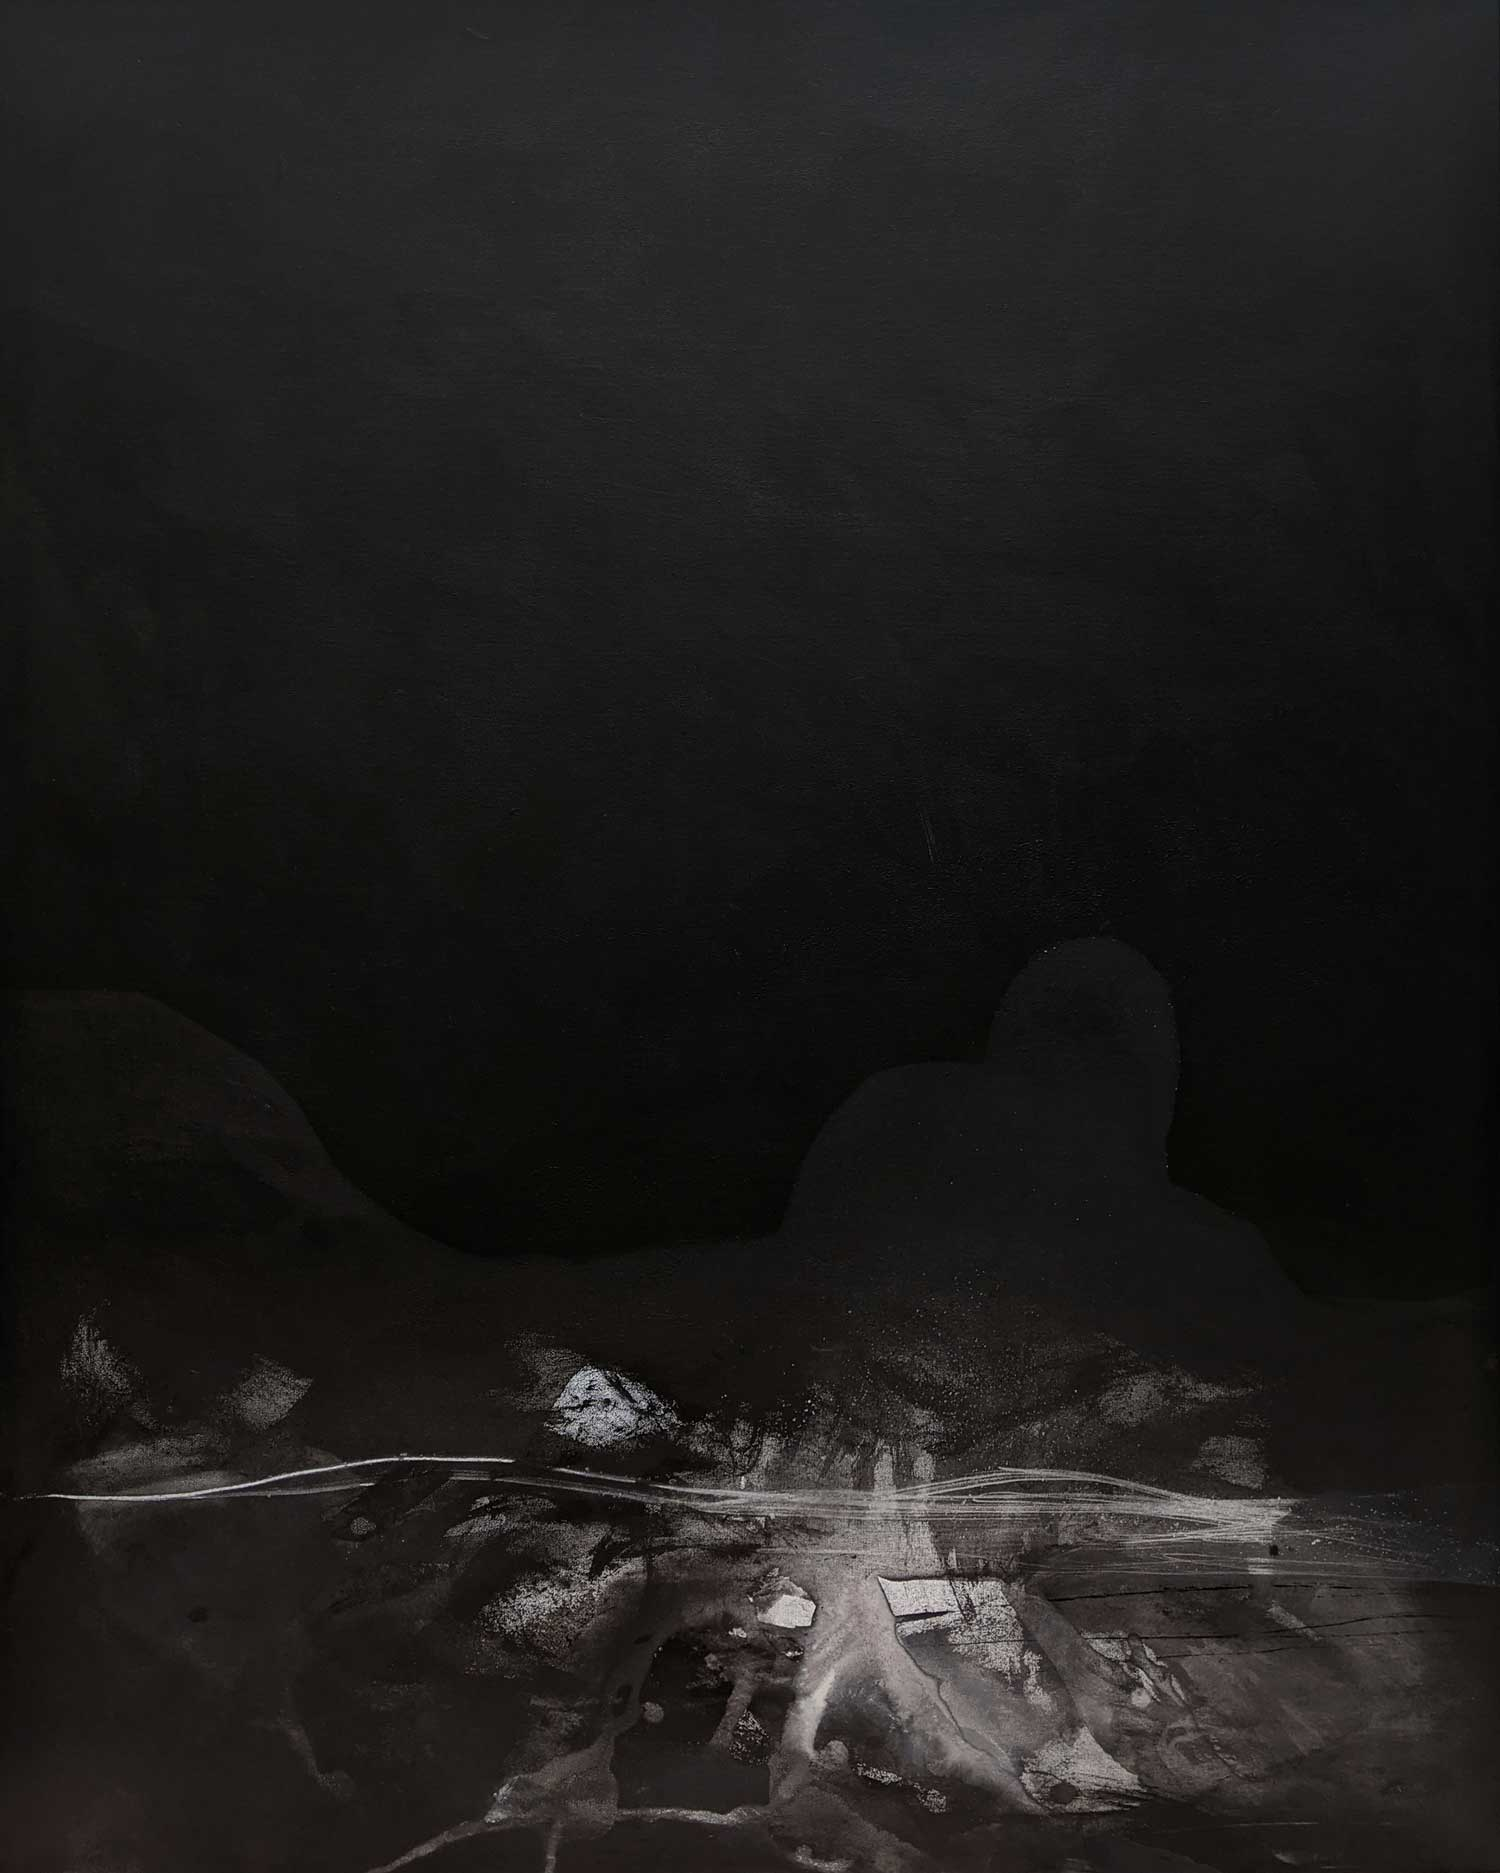 Emilie HeurteventThe Abyss #11, 2020Acrylic and ink on canvas152 cm by 122 cm$4,000